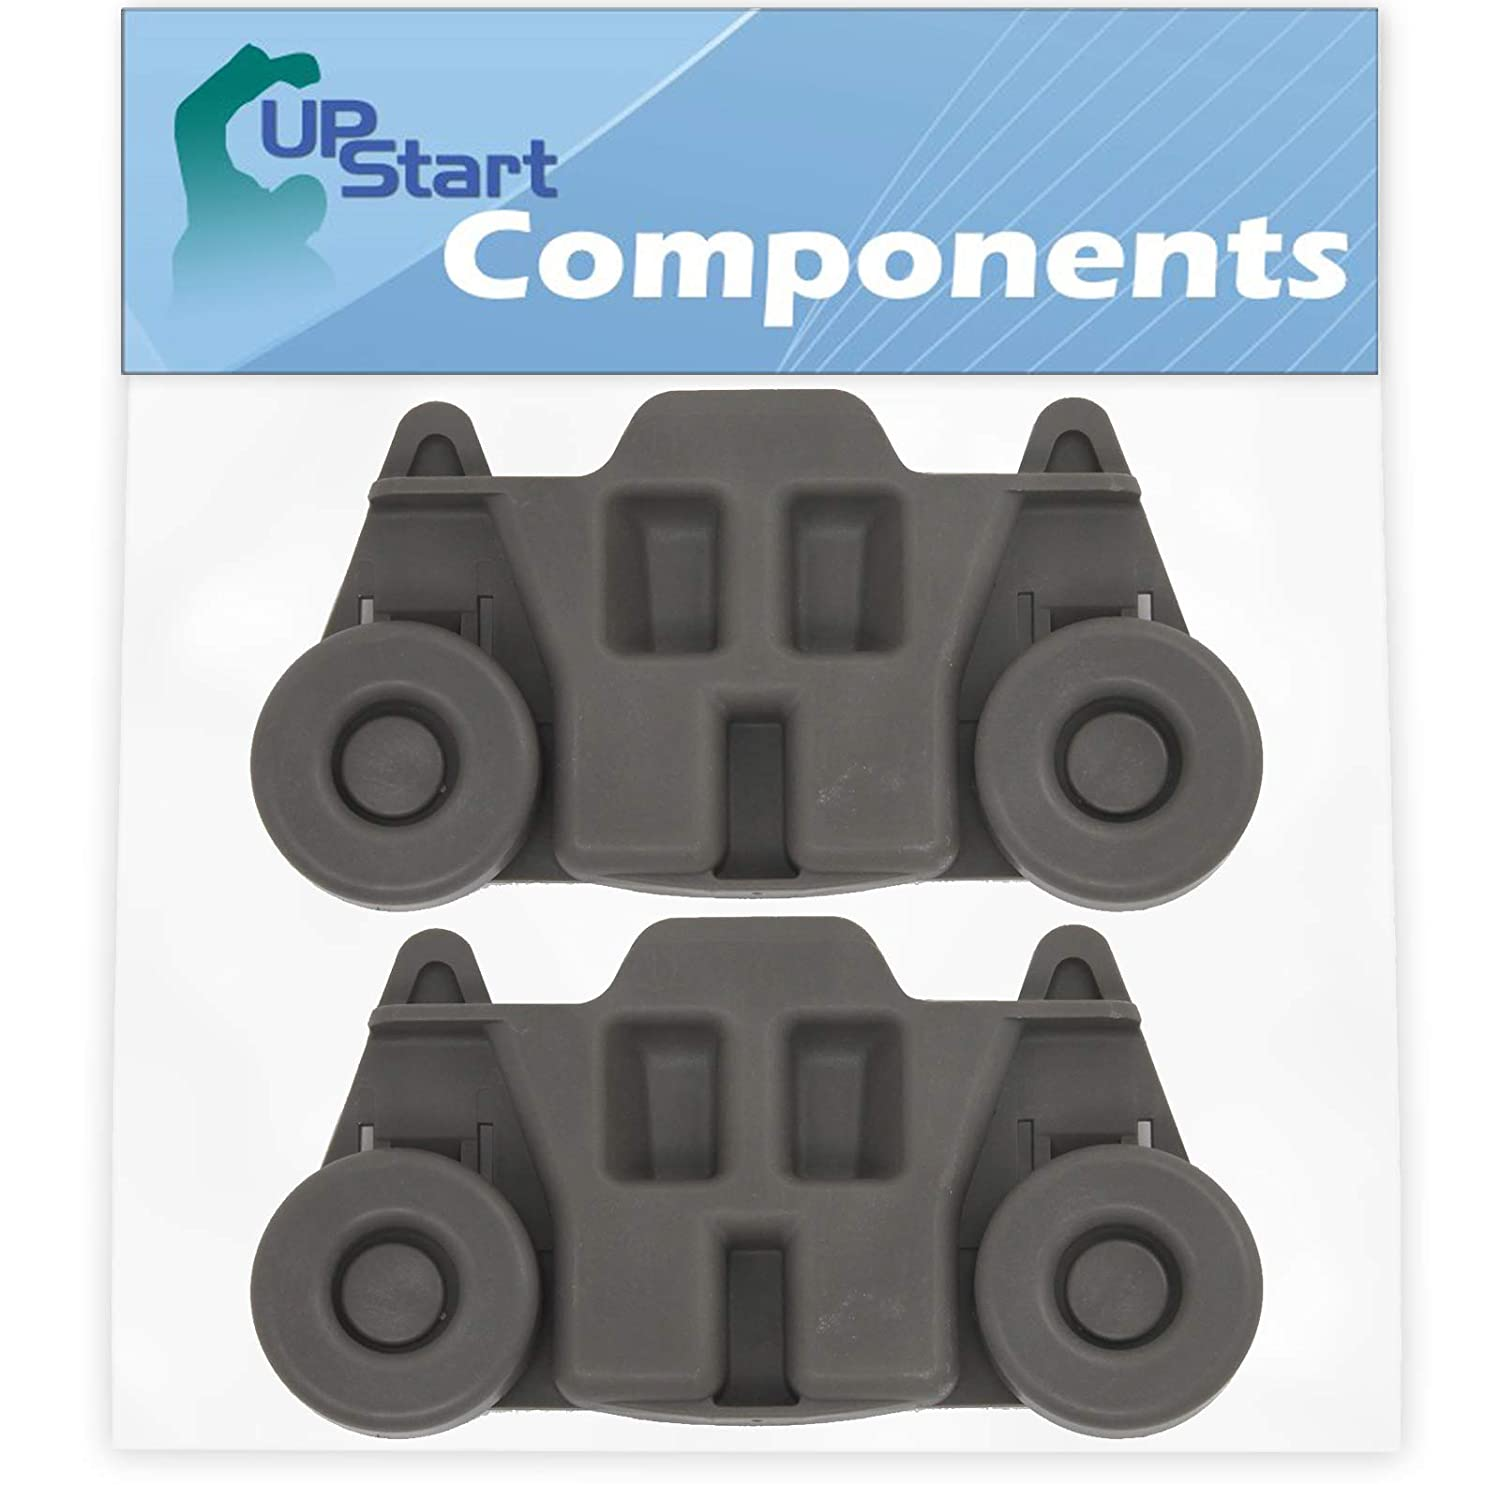 2-Pack W10195416 Lower Dishwasher Wheel Replacement for Whirlpool WDF750SAYM0 Dishwasher UpStart Components Brand Compatible with W10195416V Dishwasher Wheel